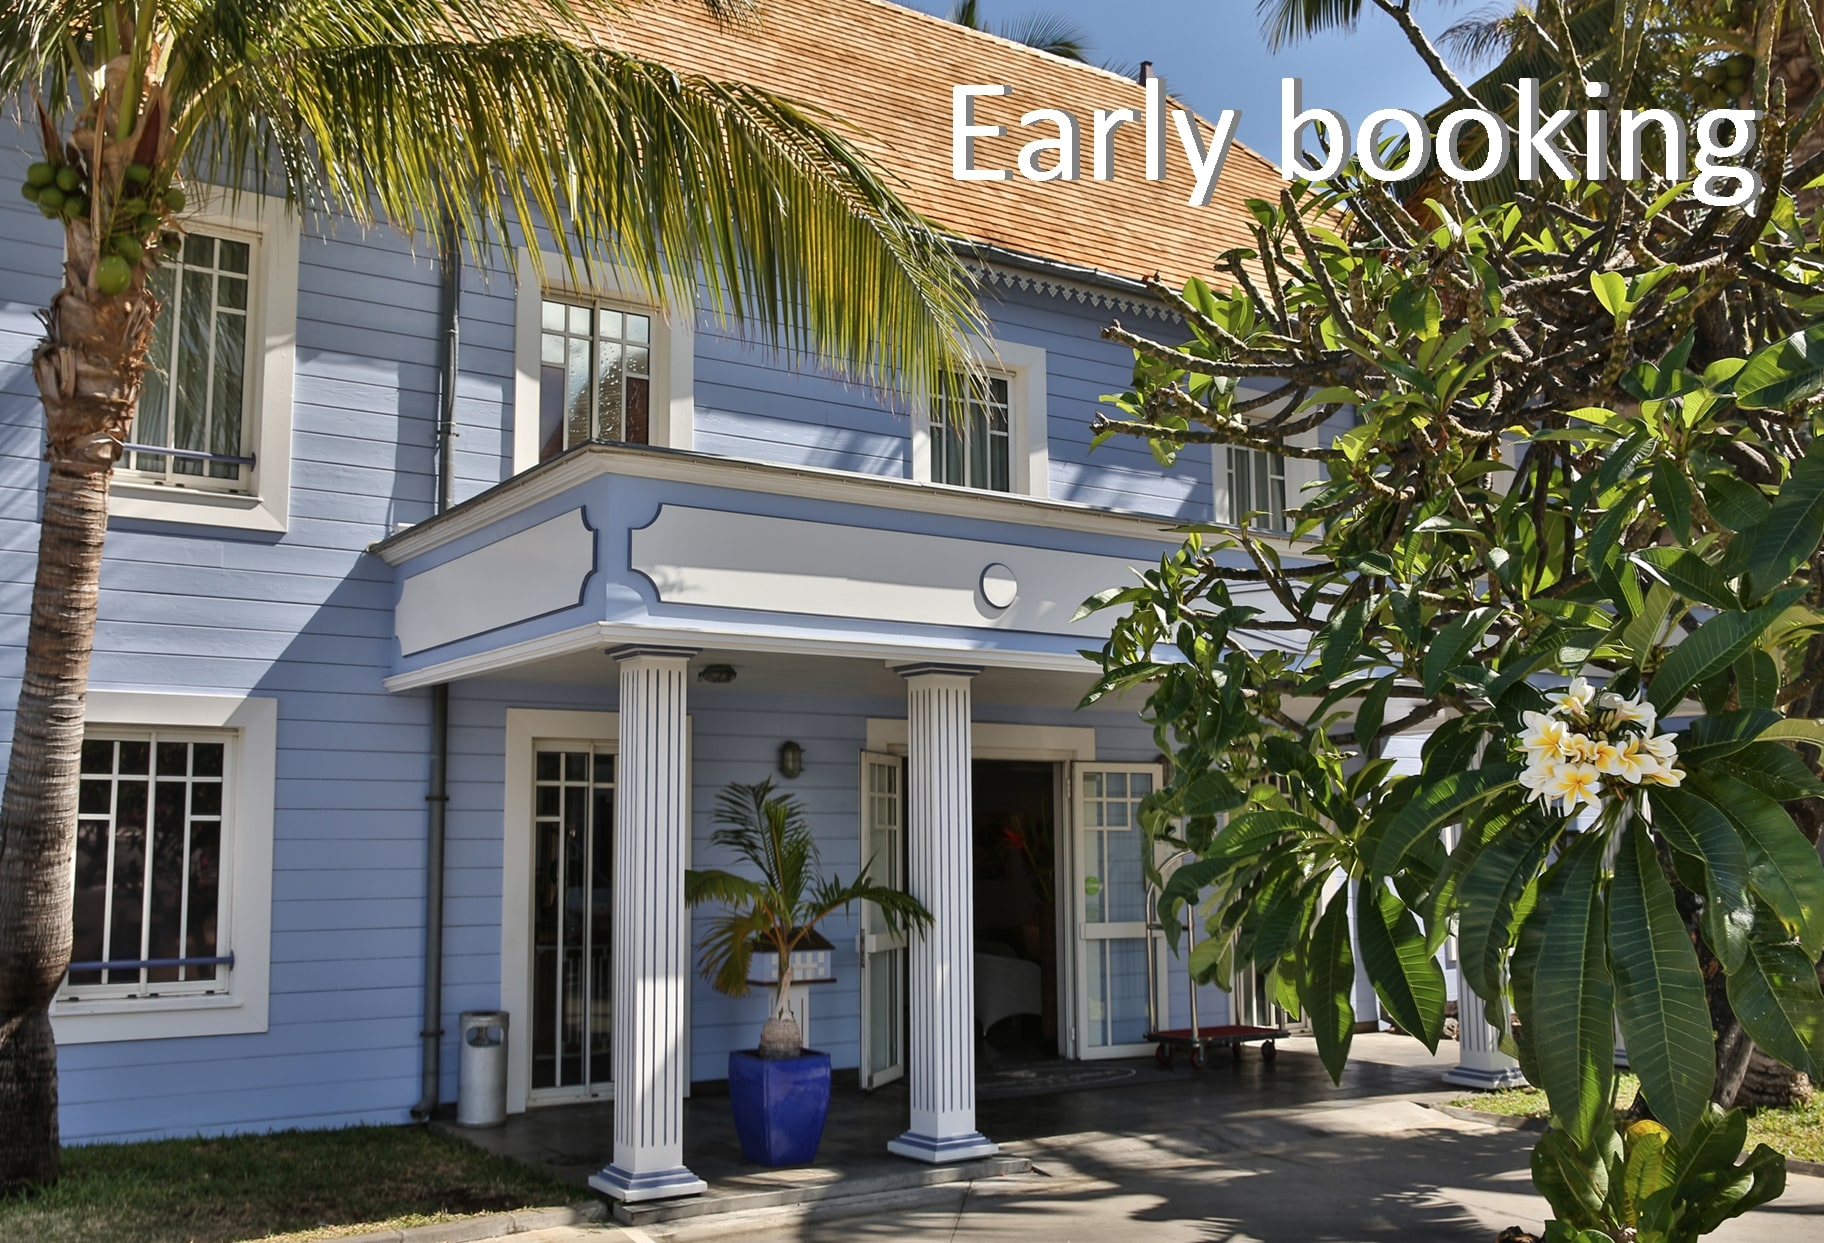 Early Booking's Promotion